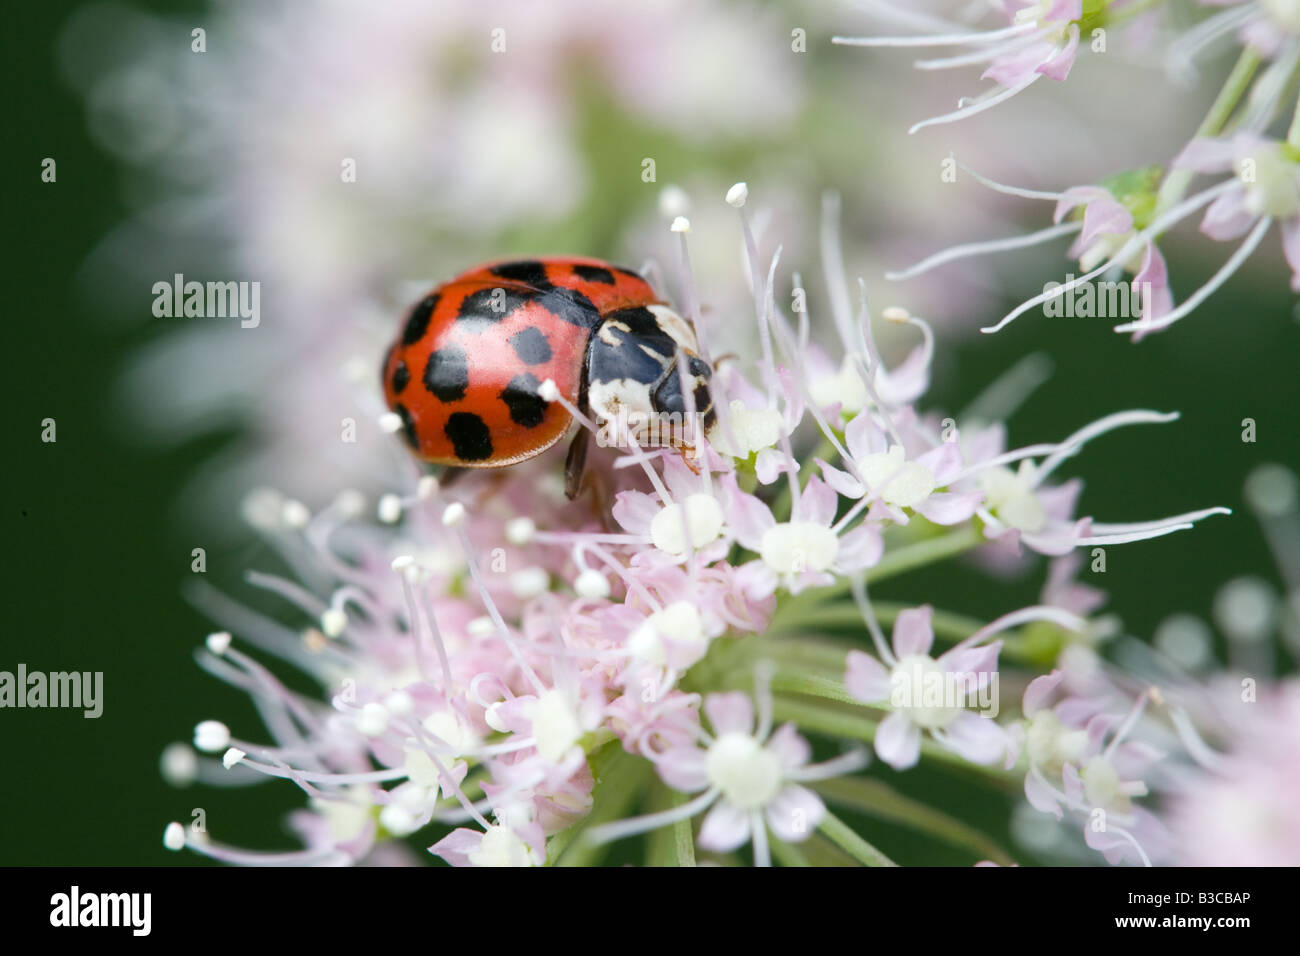 Harlequin Ladybird Harmonia axyridis adult on a Wild Angelica Andelica sylvestris flower head - Stock Image